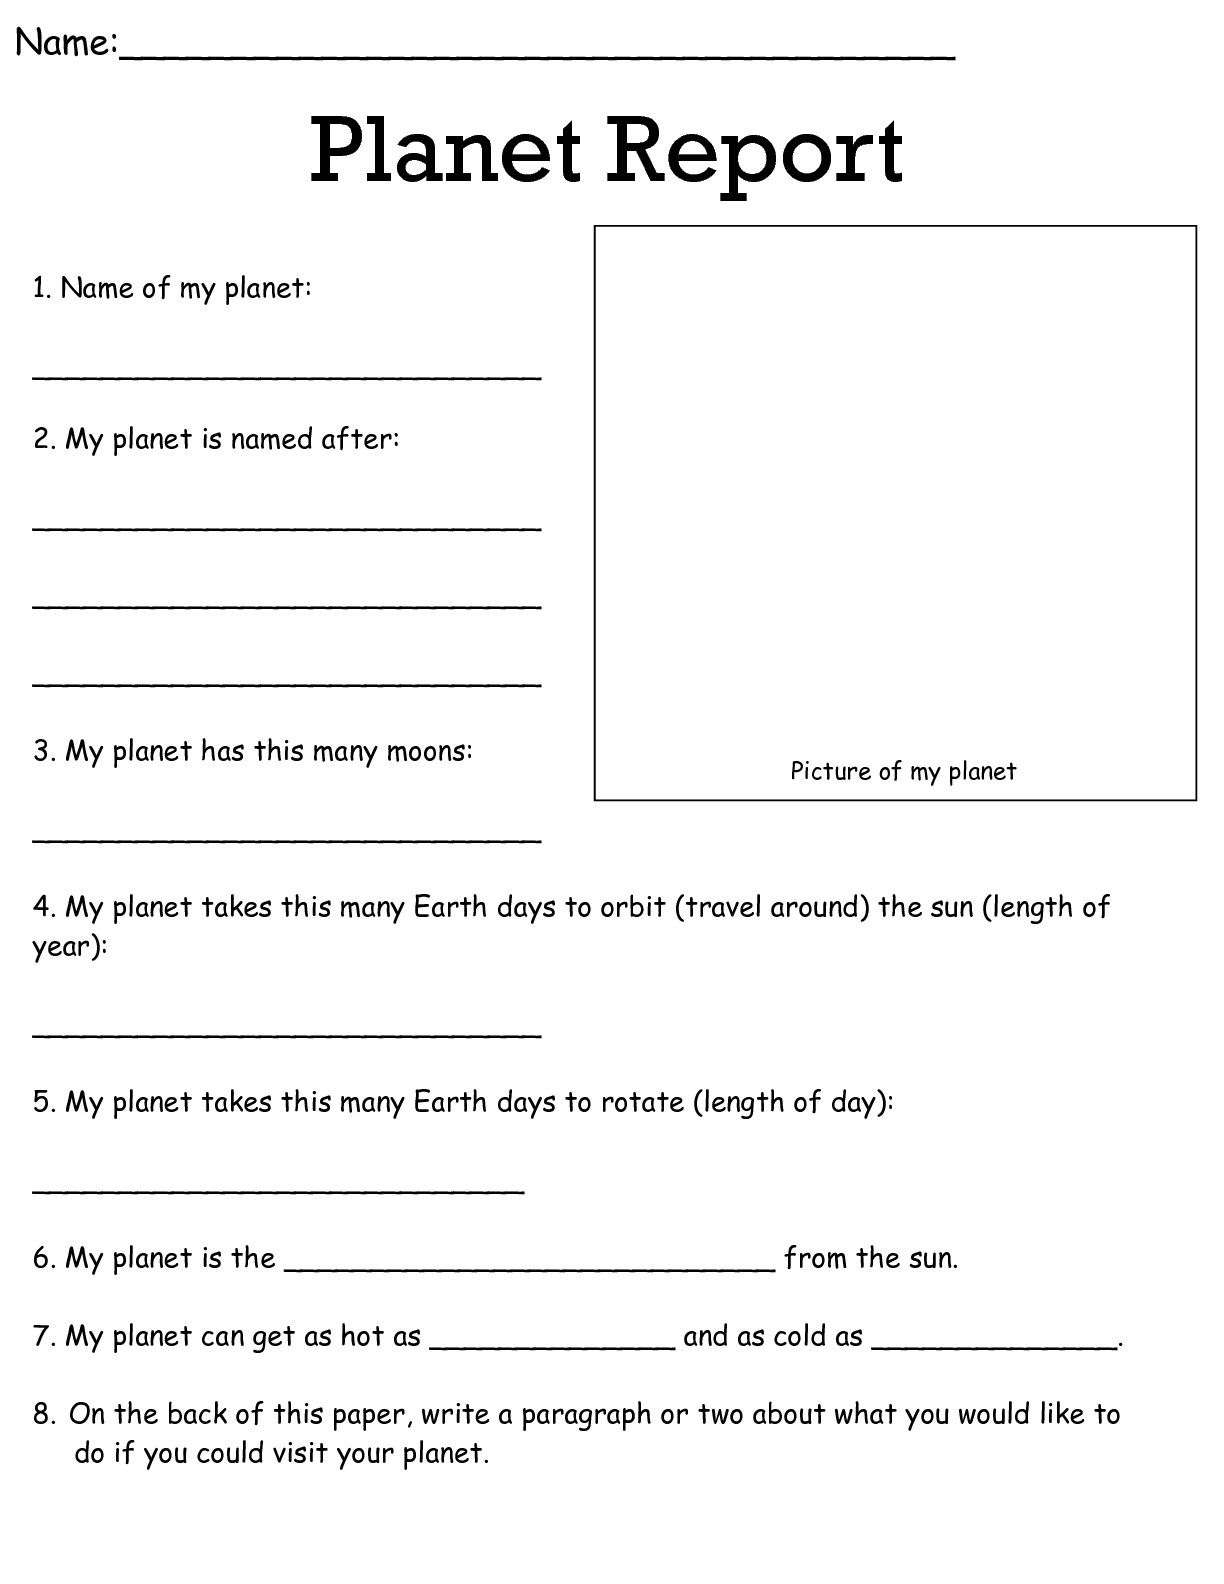 Job Worksheets 5Th &6Th | Science Worksheets Science Worksheets | Grade 8 Science Worksheets Printable